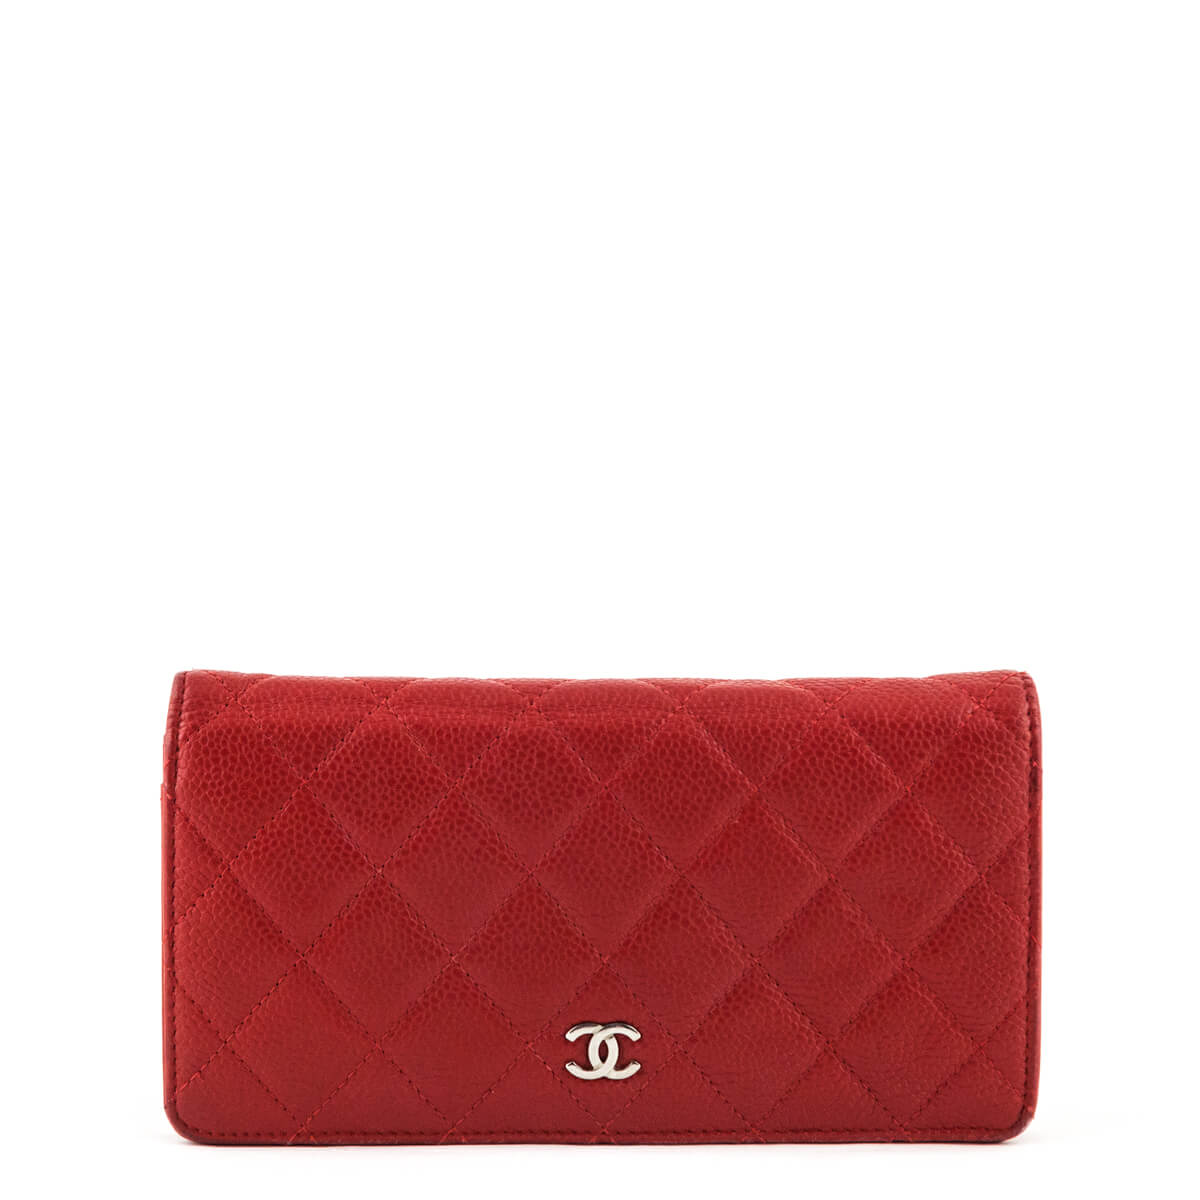 2fac215e9cc6 Chanel Red Caviar Bifold Yen Wallet - LOVE that BAG - Preowned Authentic  Designer Handbags ...